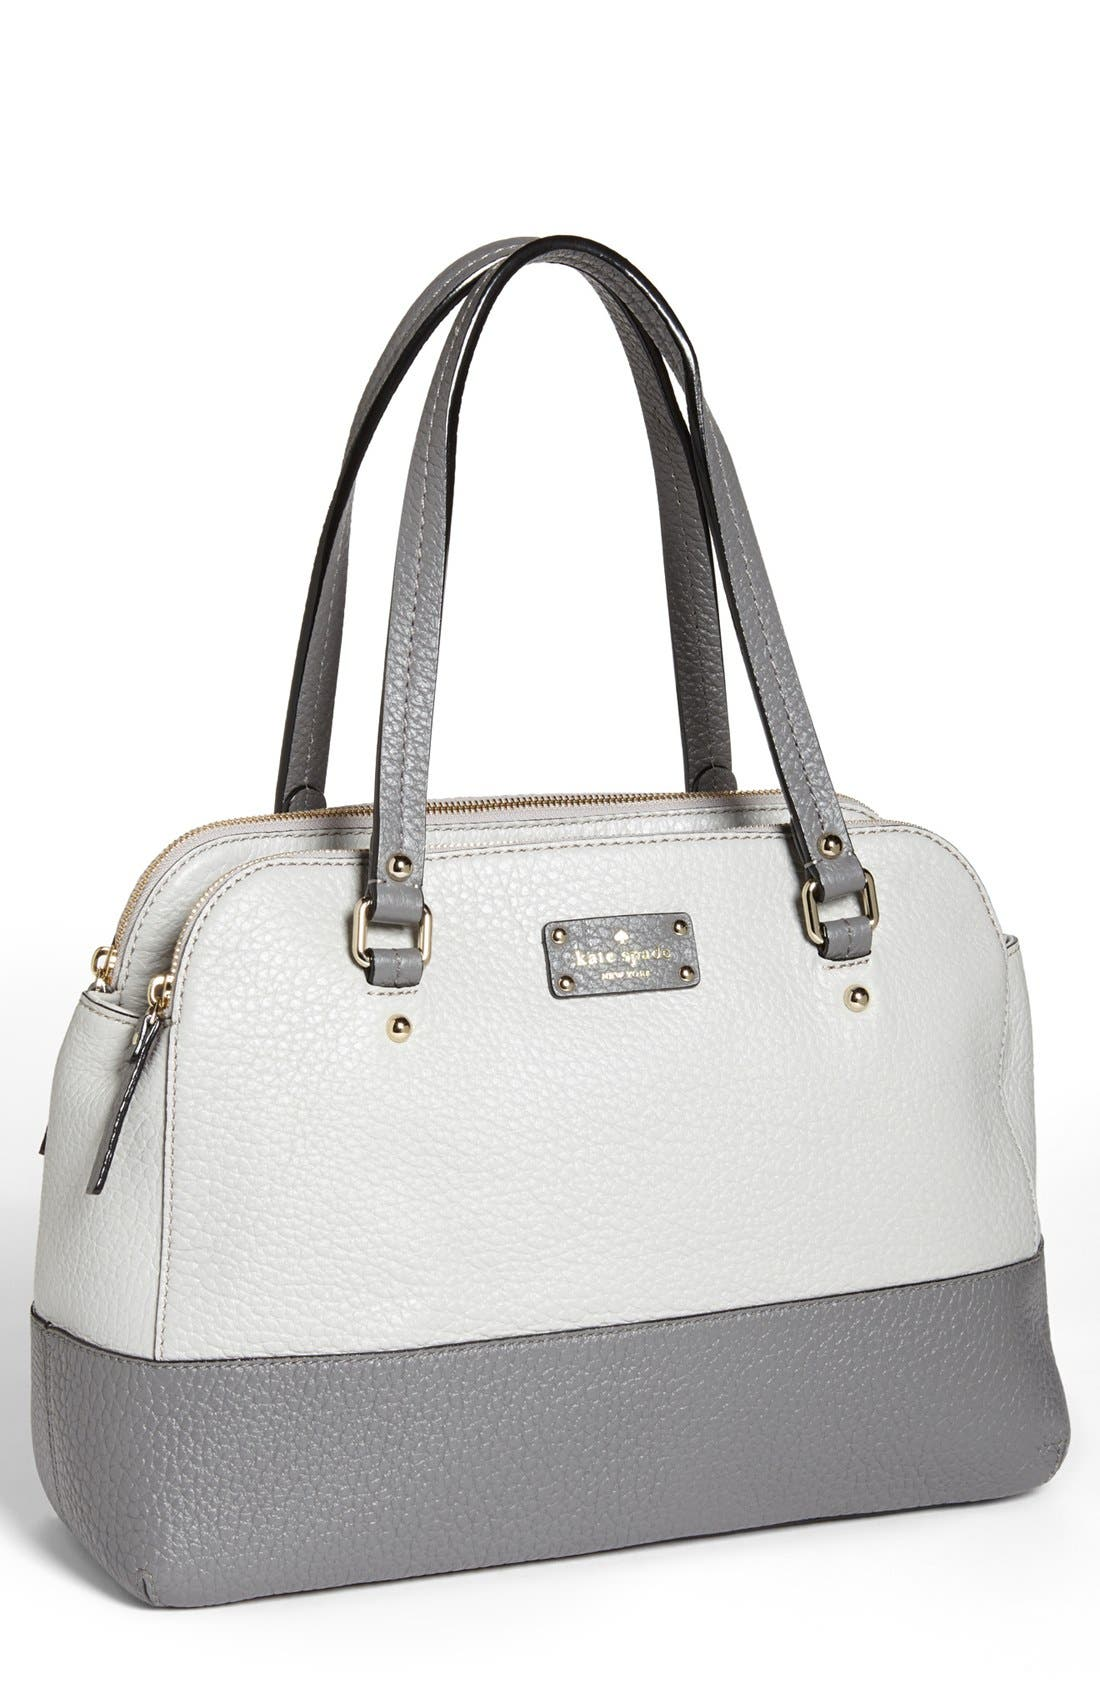 Alternate Image 1 Selected - kate spade new york 'grove court - lainey' shoulder bag